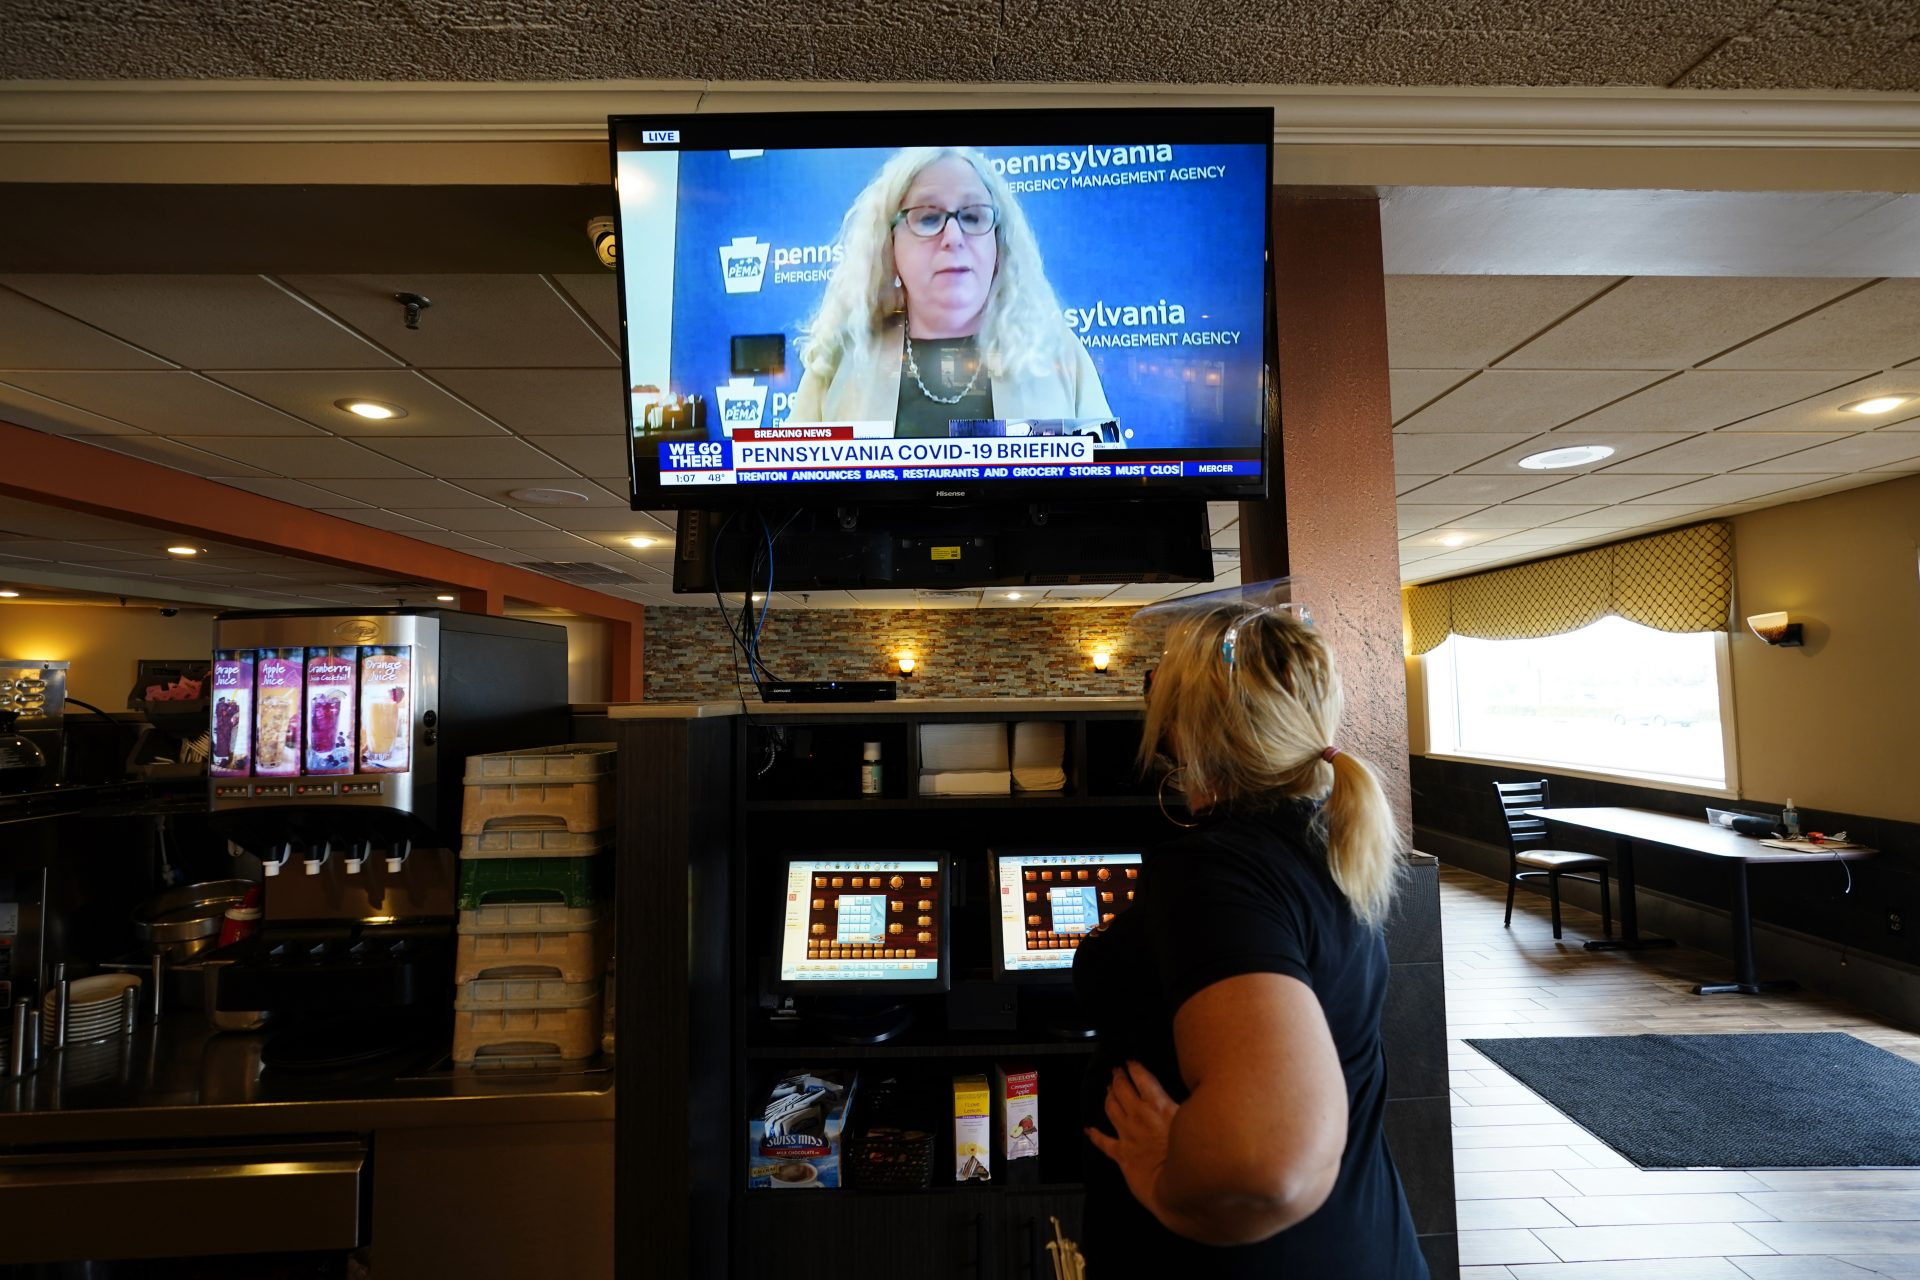 Waitress Lauren Musial watches a television briefing by Pennsylvania Health Secretary, Dr. Rachel Levine, at the Penrose Diner, Tuesday, Nov. 17, 2020, in South Philadelphia.